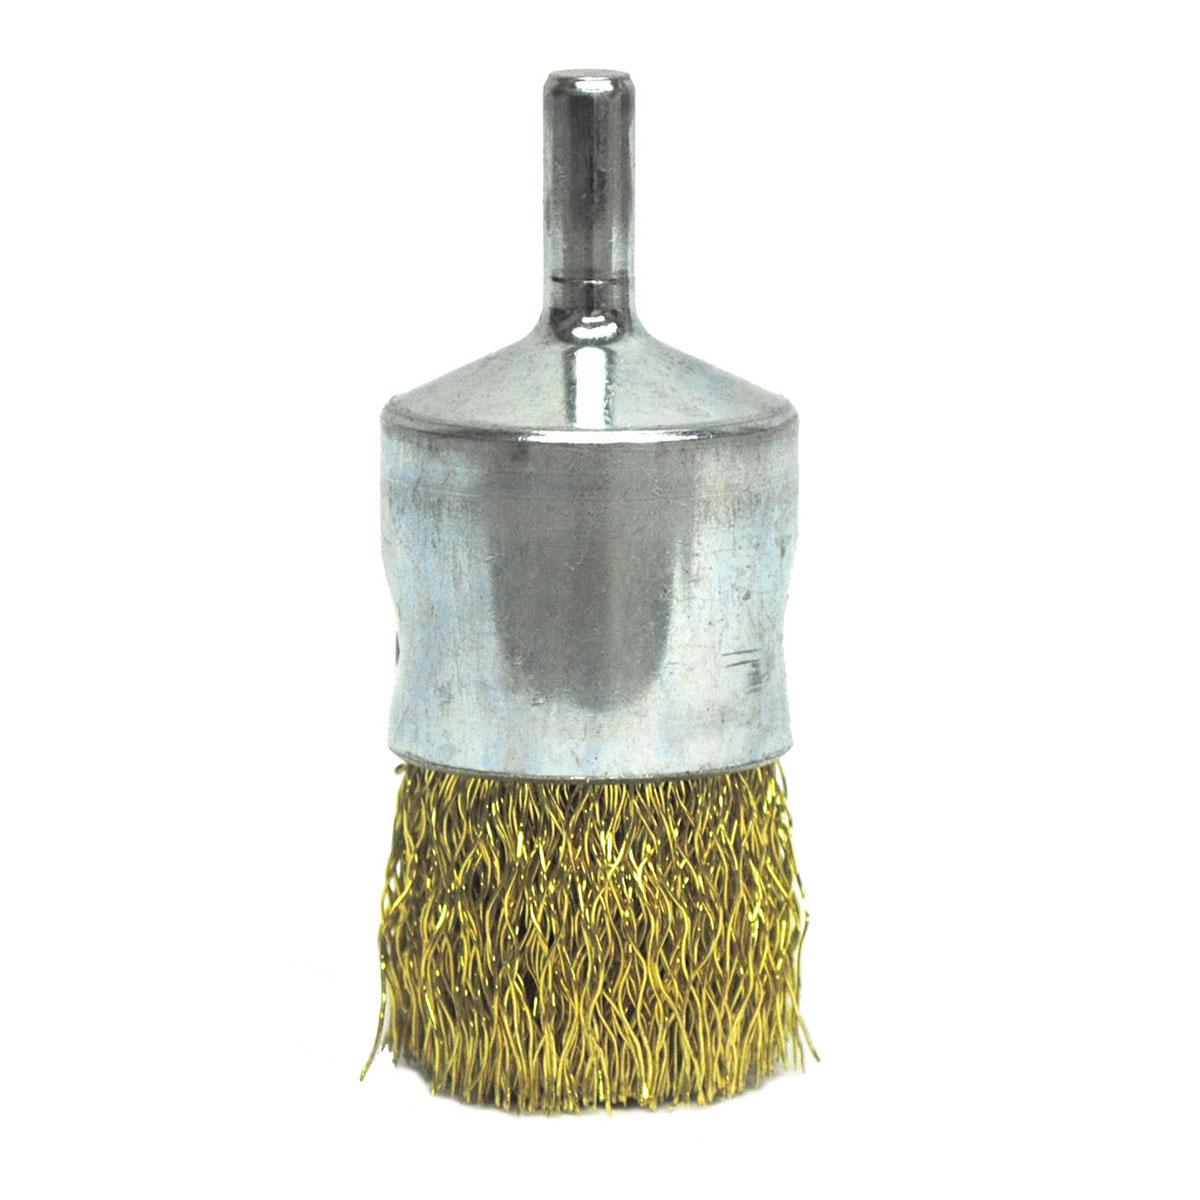 "CRIMPED WIRE END WIRE BRUSH, BRASS, 1"" EBA-22 .0118 BRASS"